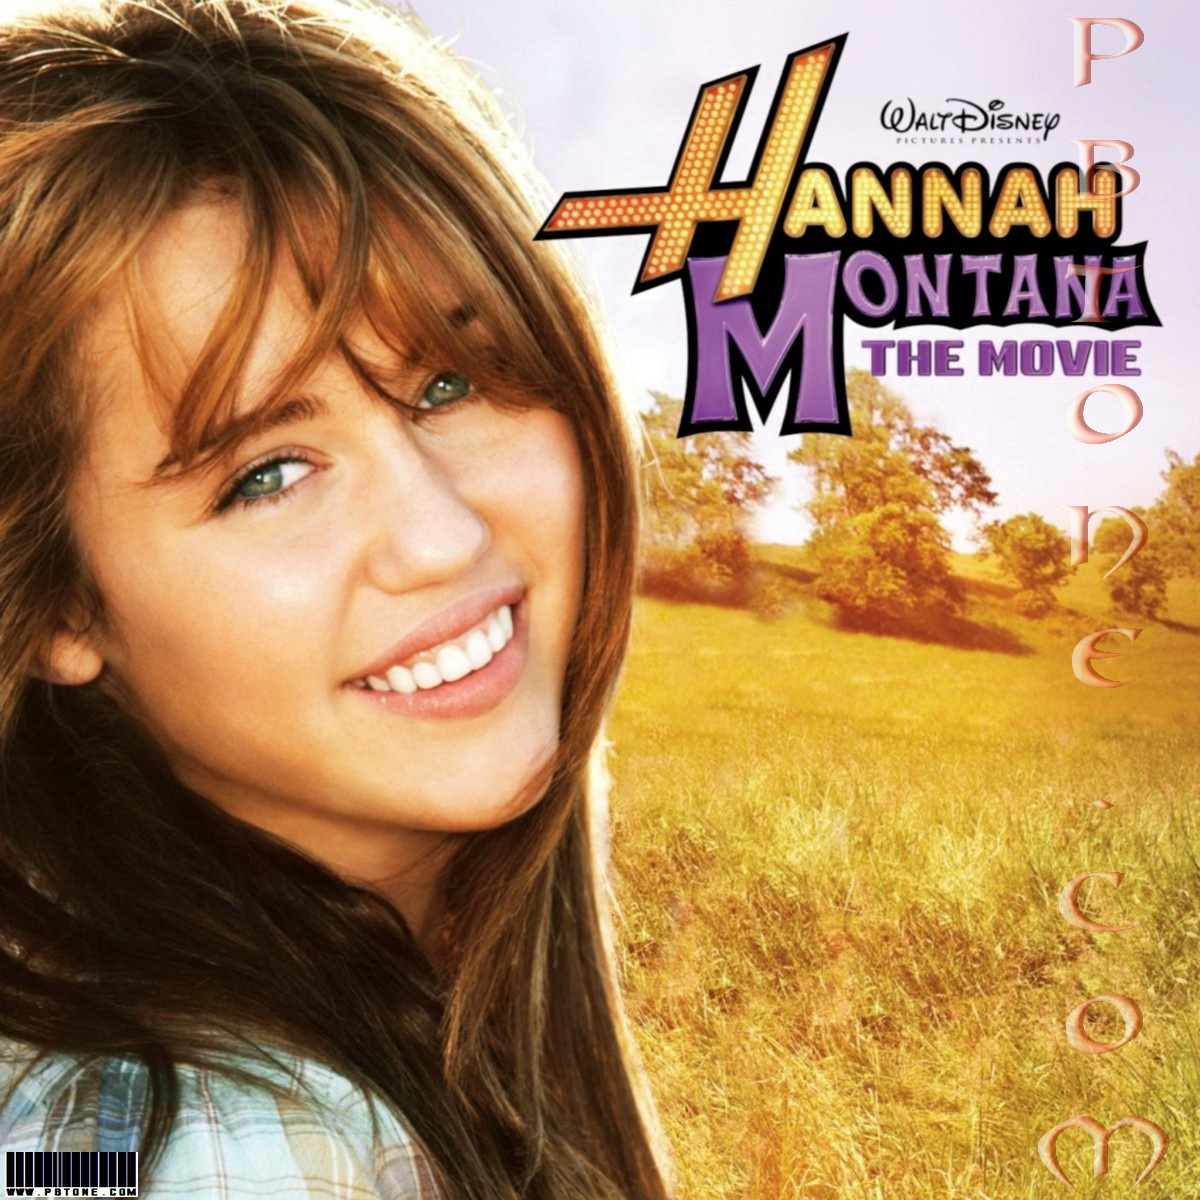 hannah montana the movie video search engine at searchcom